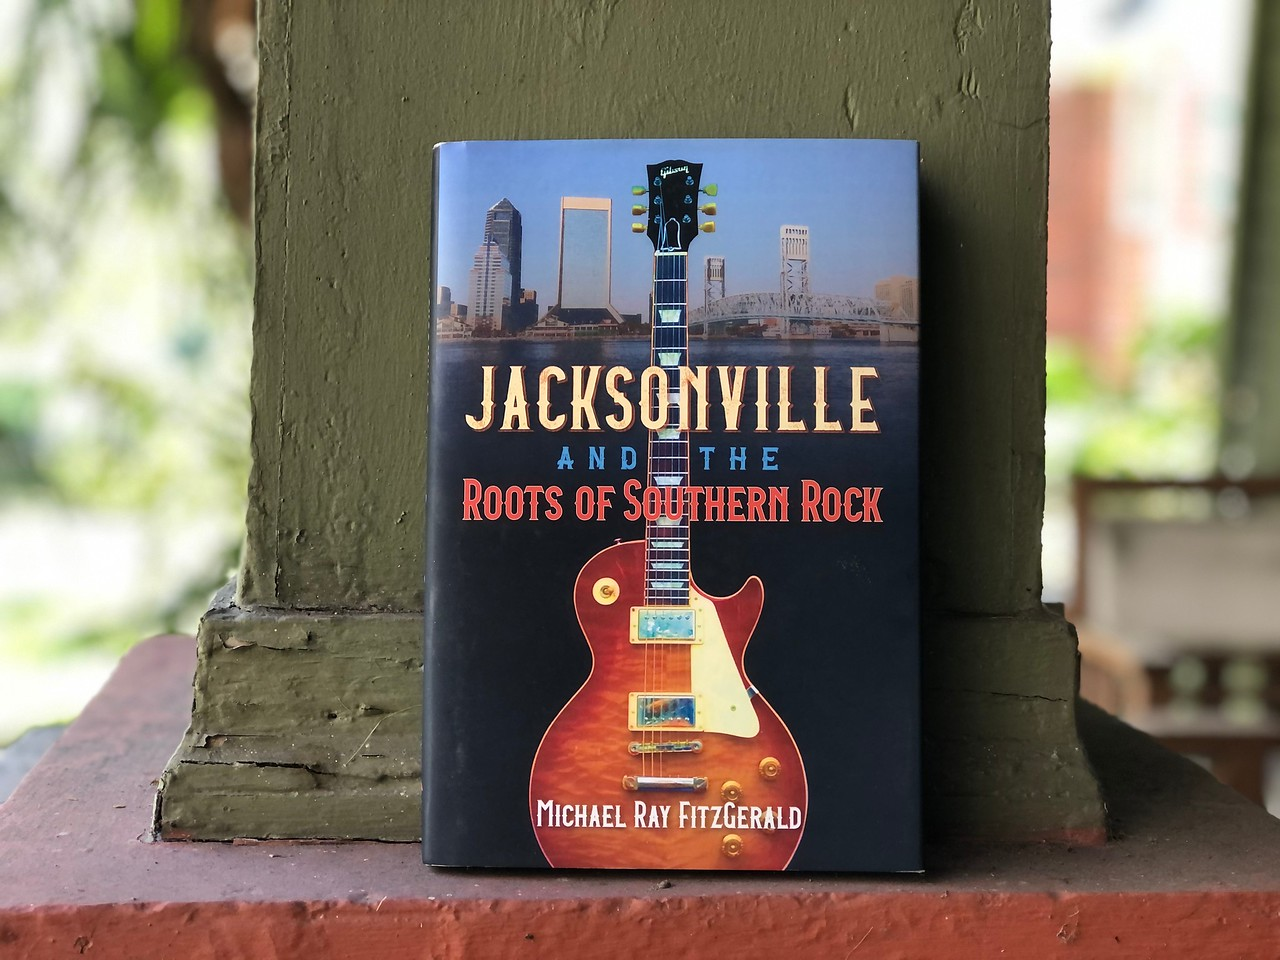 New book: Jacksonville and the Roots of Southern Rock